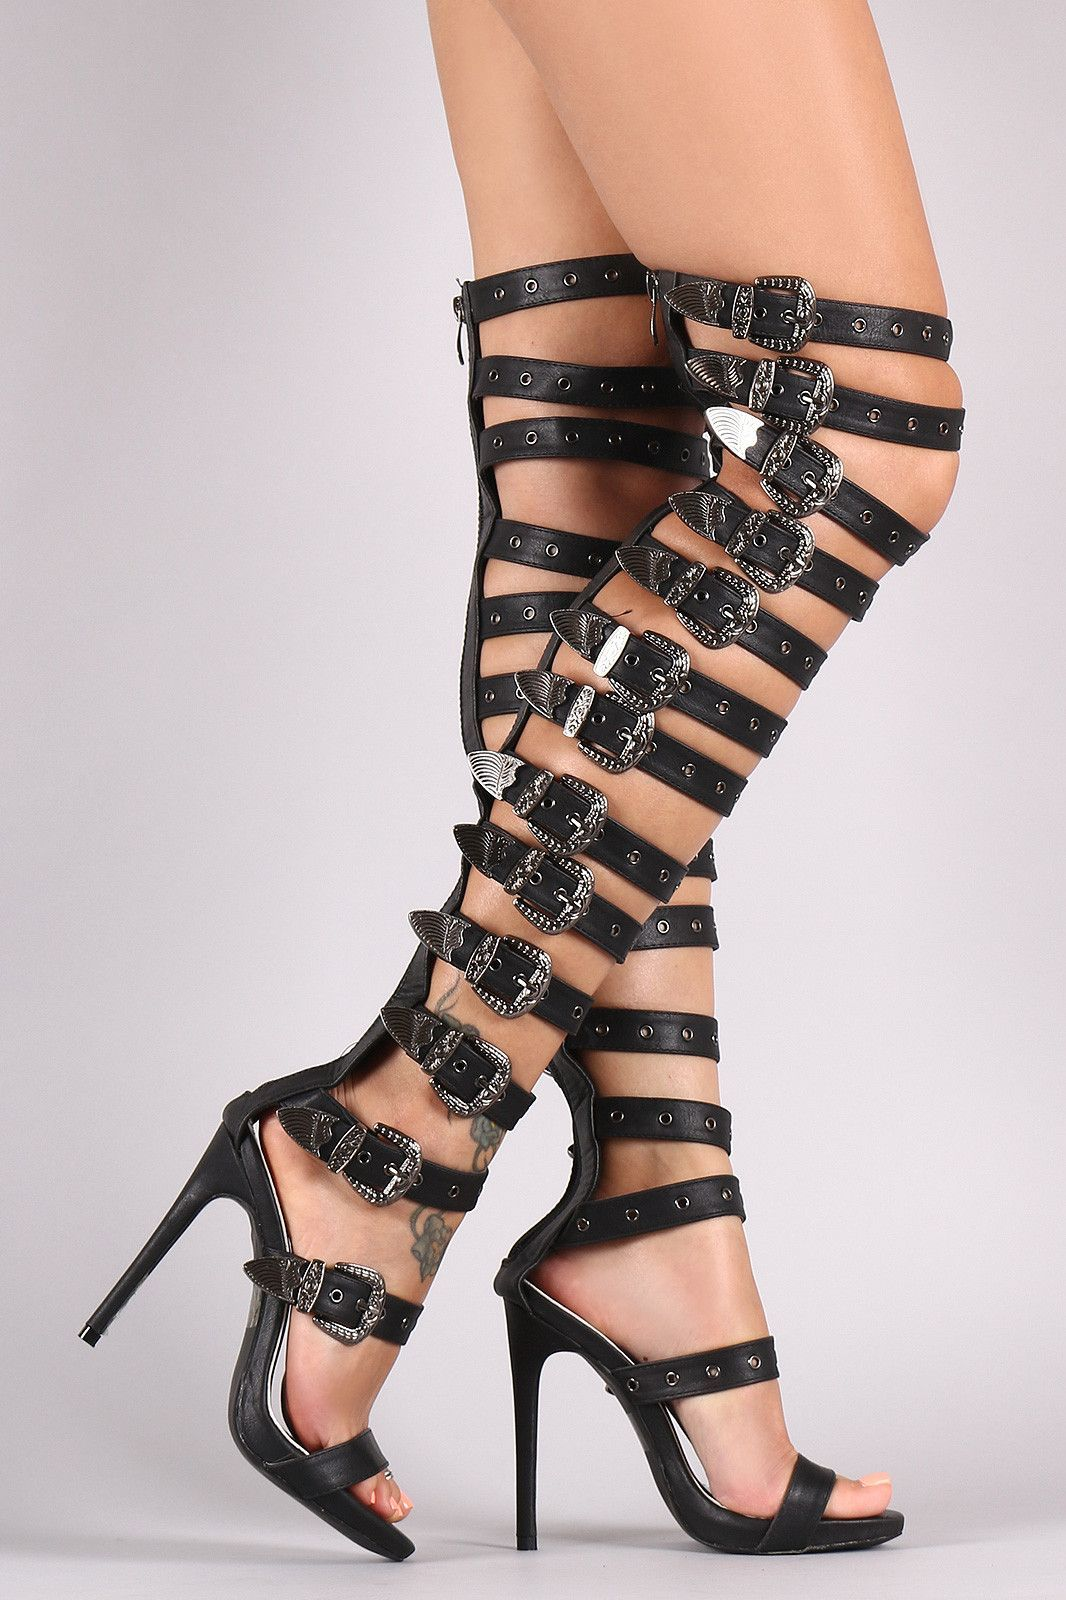 4d134a88cdd1 Strappy Buckled Grommets Thigh High Gladiator Heel